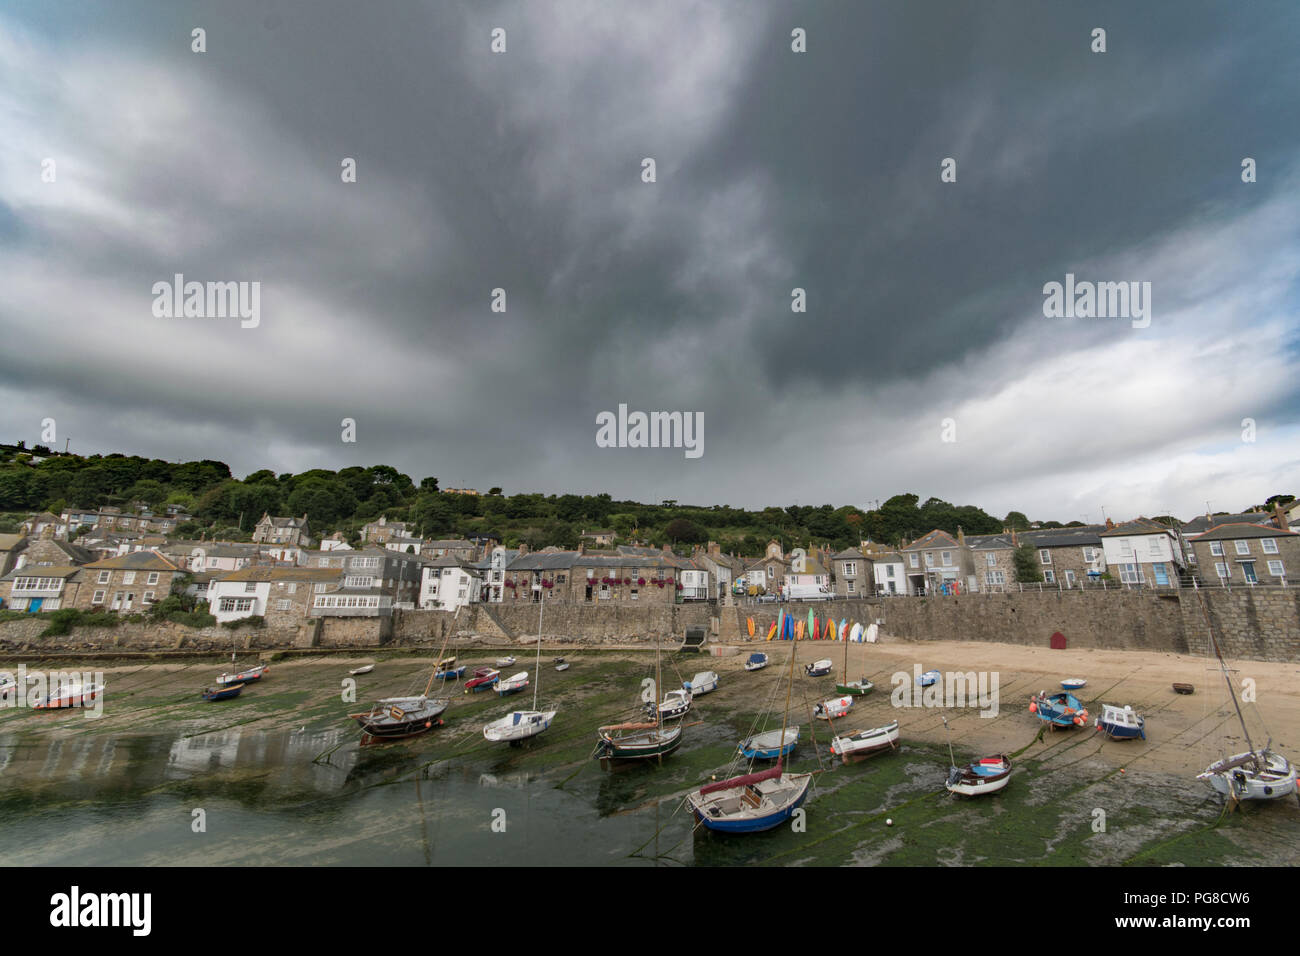 Mousehole, Cornwall, UK. 24th August 2018. UK Weather. It was Yo-yo weather this morning with alternating bright sunshine then heavy downpours at Moushehole, which is a popular bank holiday destination from people around the UK and Europe. Credit: Simon Maycock/Alamy Live News Stock Photo